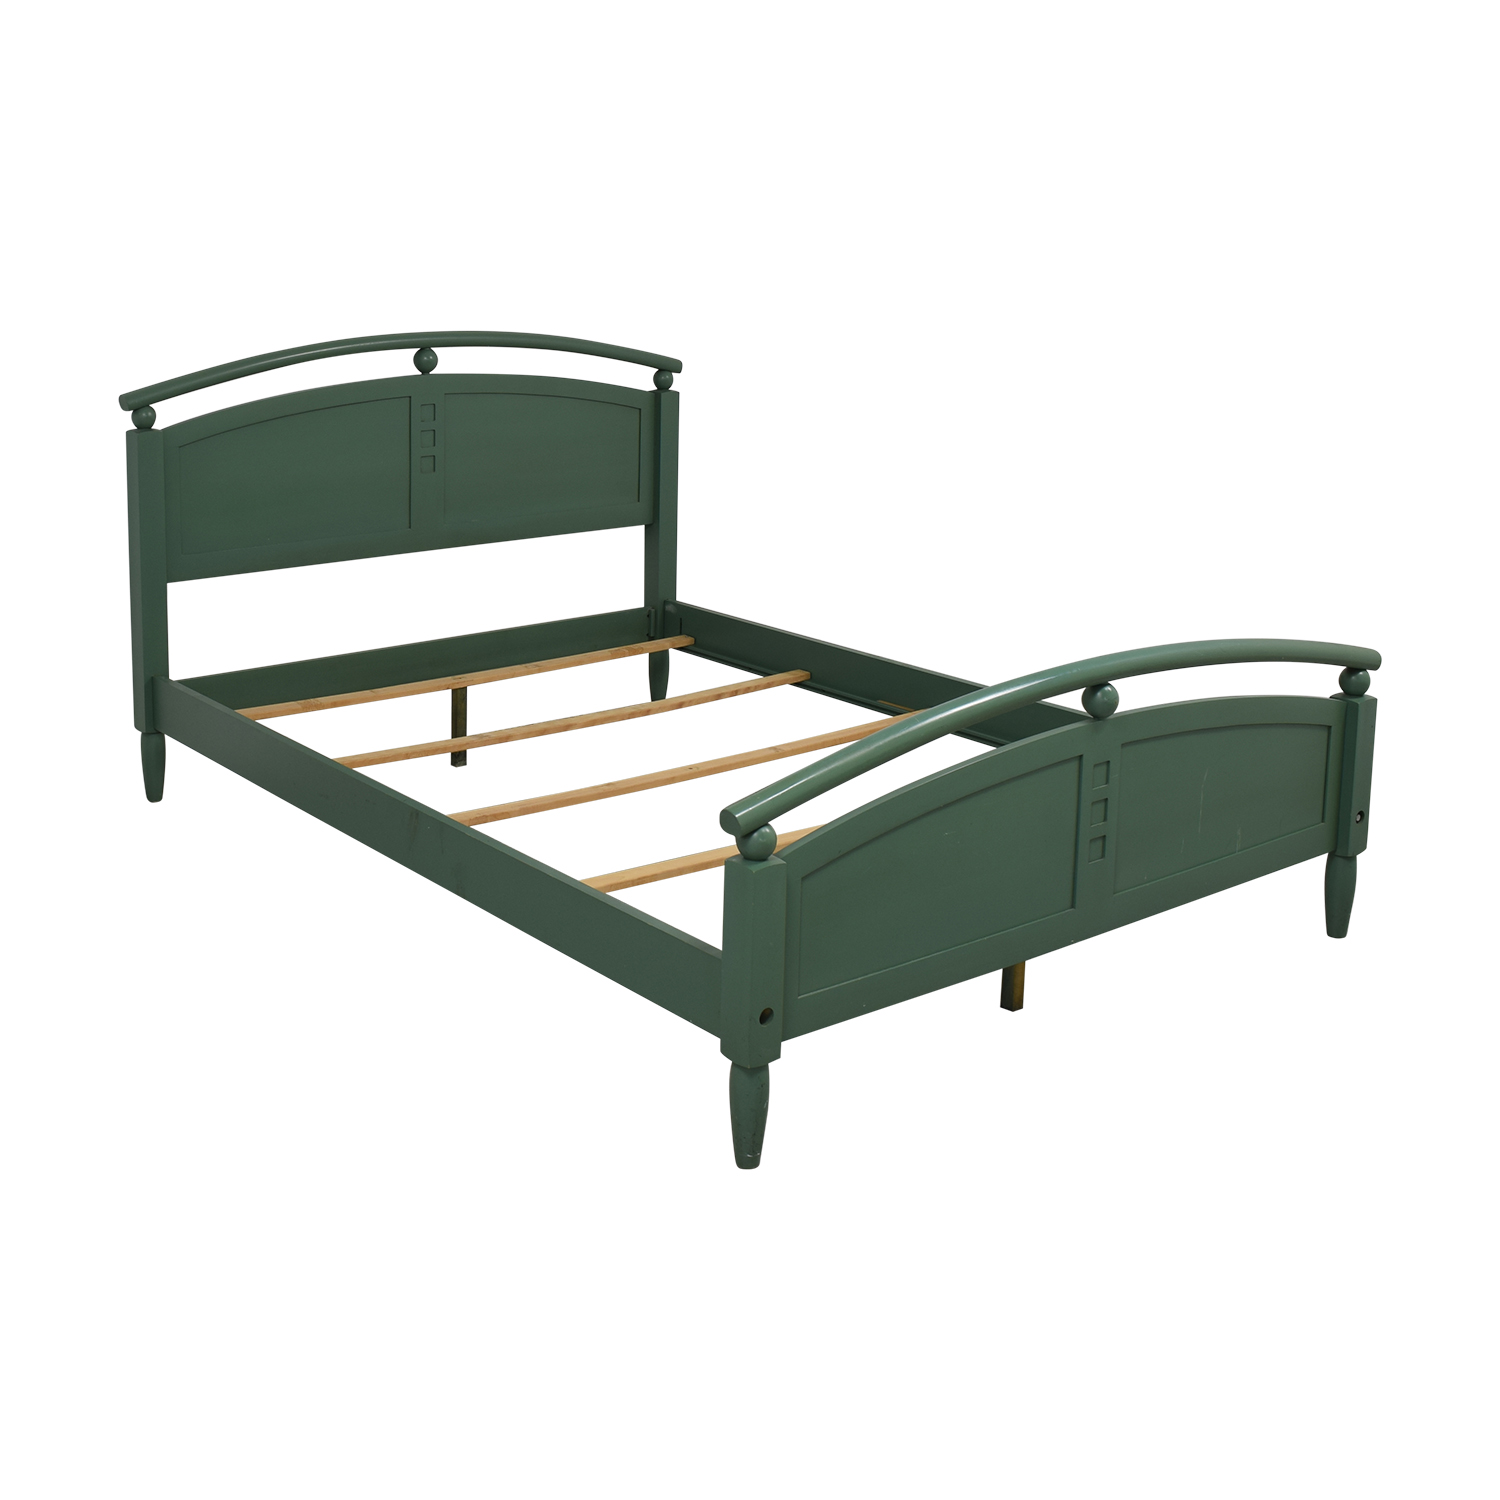 buy Ethan Allen American Dimensions Double Arched Queen Bed Ethan Allen